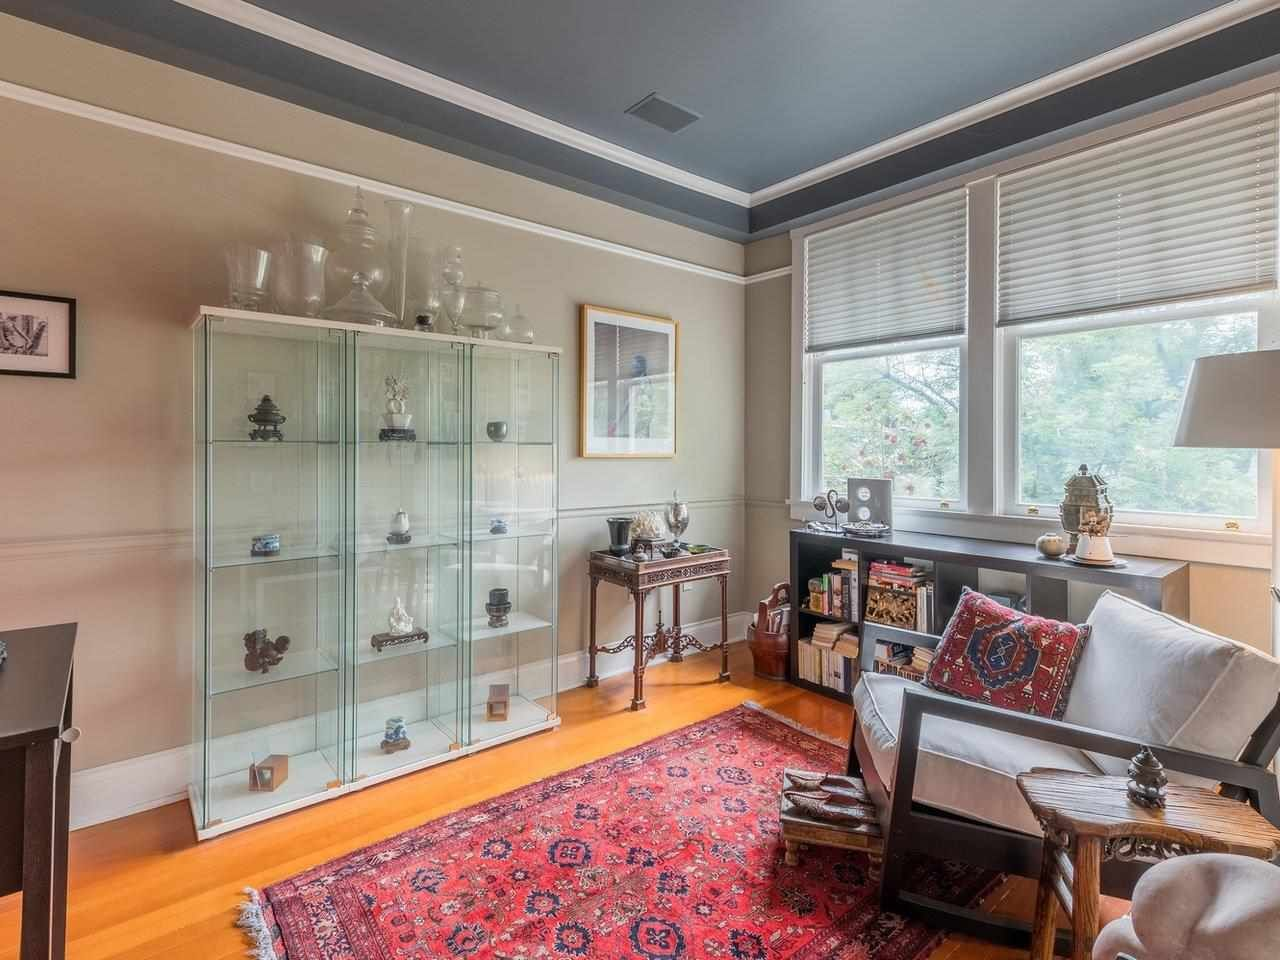 Photo 22: Photos: 2556 W 2ND Avenue in Vancouver: Kitsilano House for sale (Vancouver West)  : MLS®# R2593228